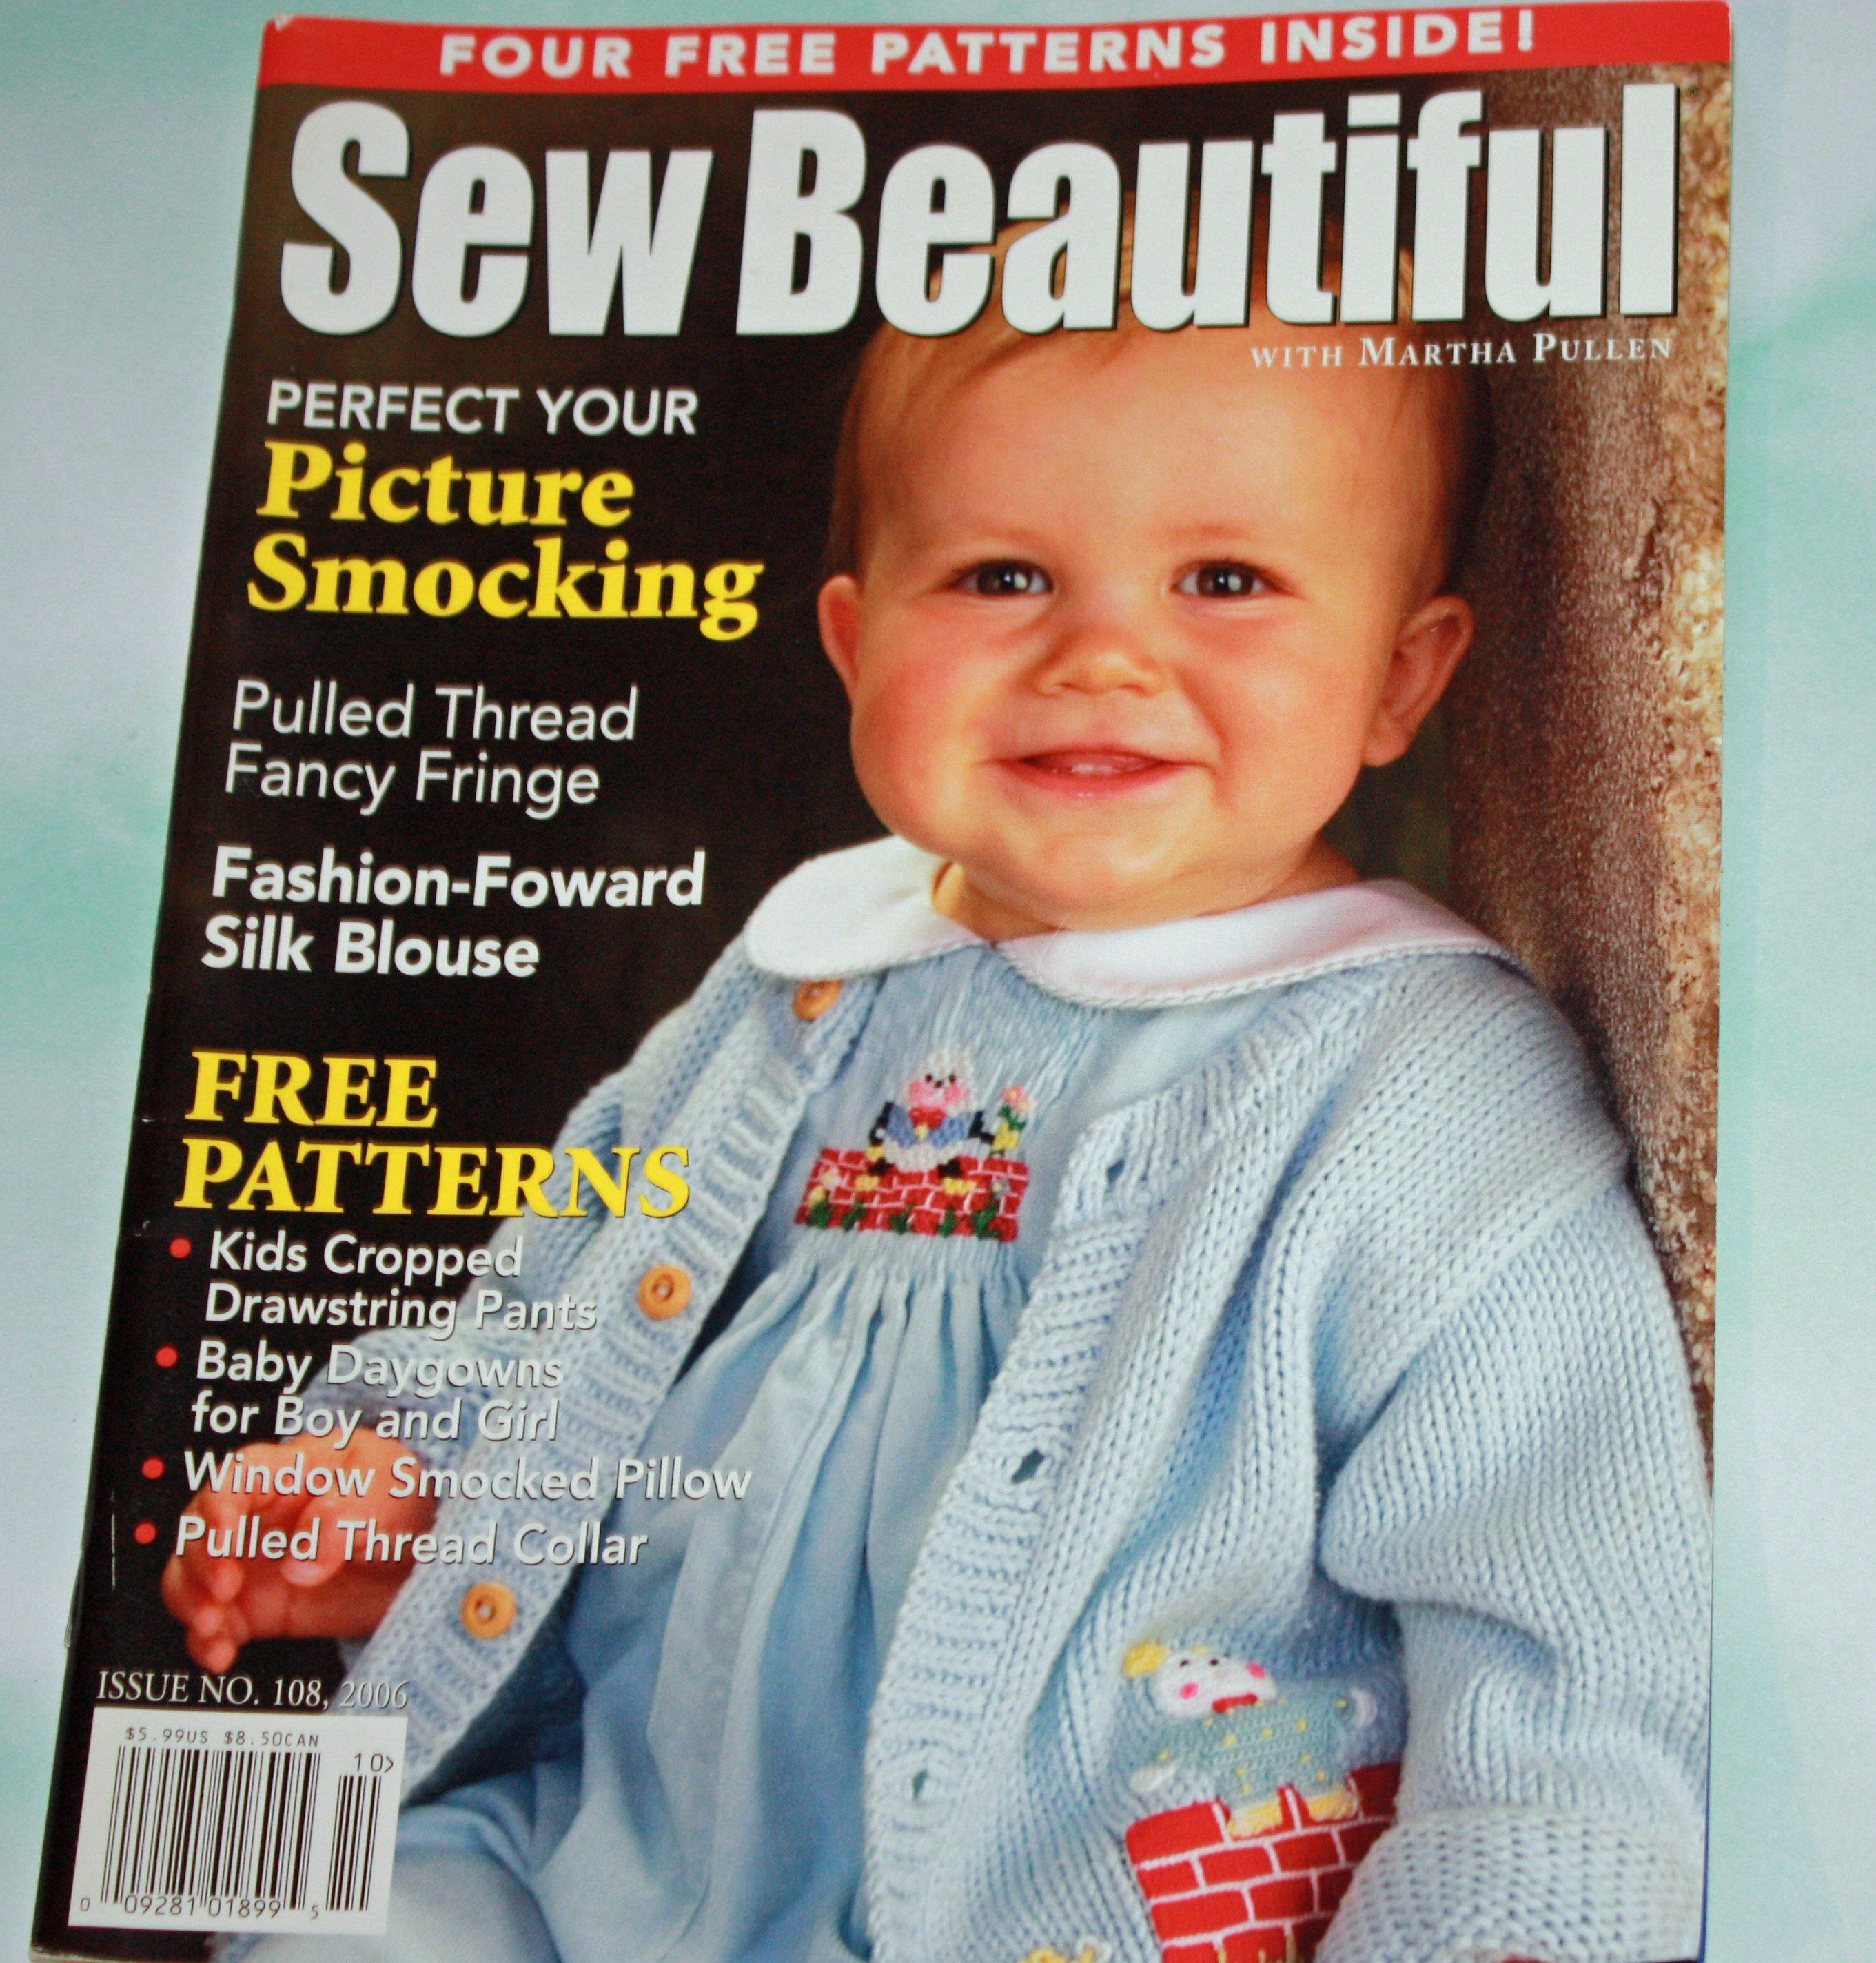 Sew Beautiful Magazine Issue No 108 2006 4 Free Patterns Kids Pants Baby Daygowns Smocked Pillow Col Heirloom Sewing Childrens Sewing Patterns Smocking